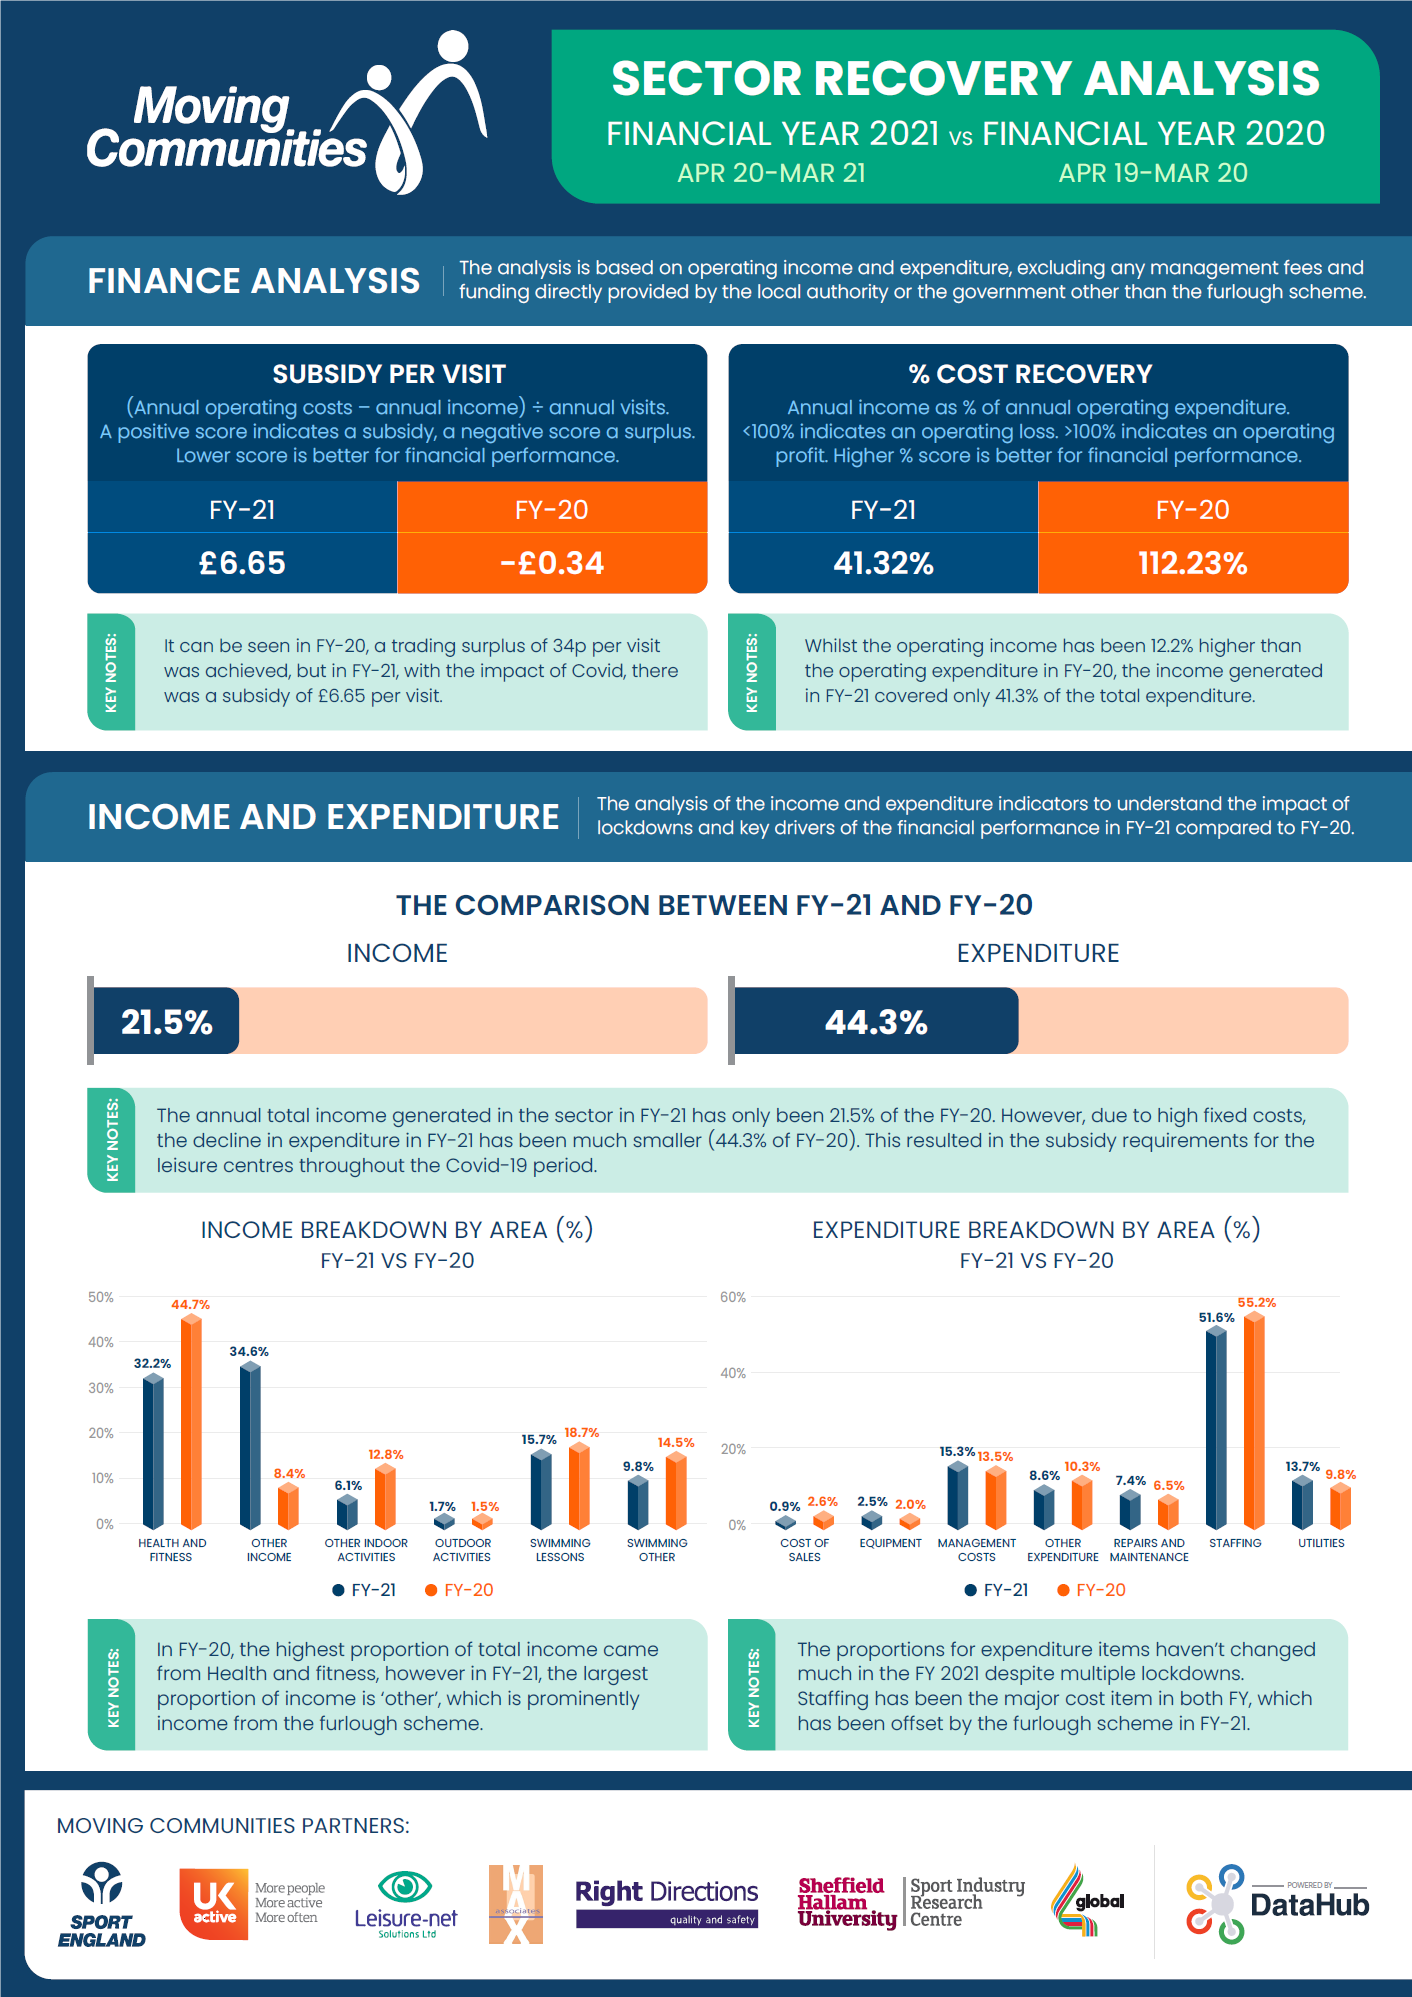 Latest Moving Communities Sector Recovery Analysis Revealed